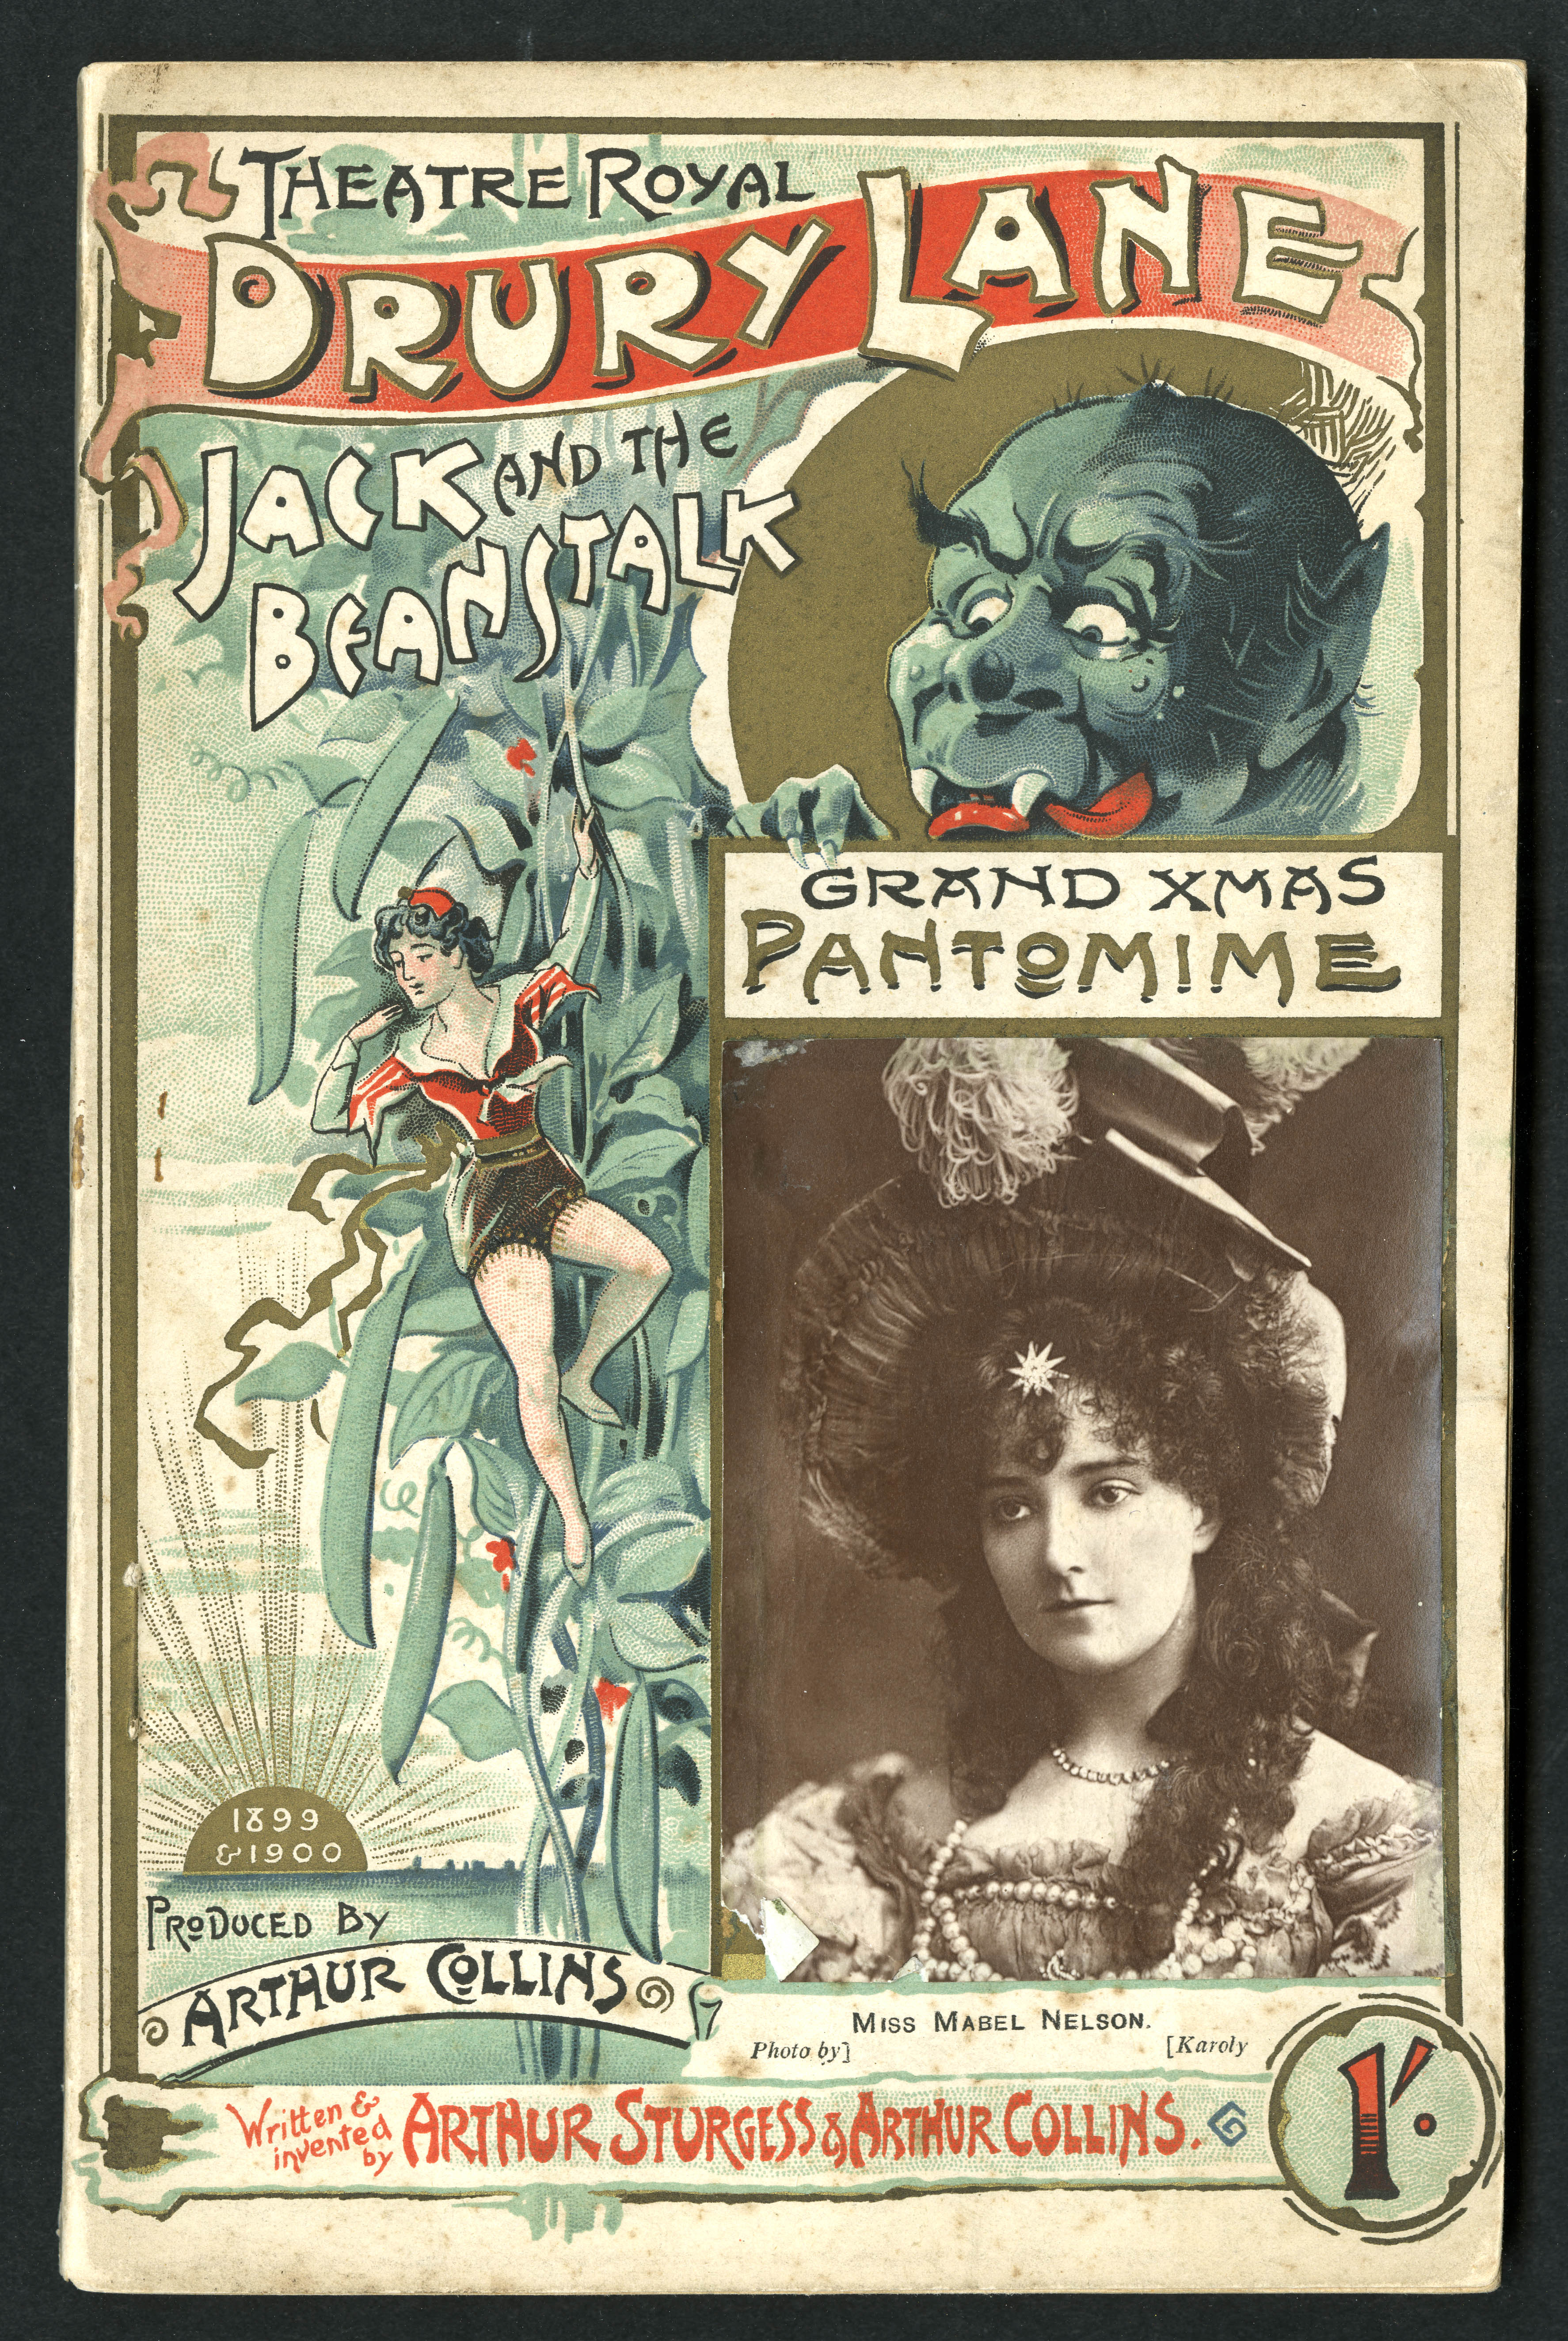 Programme for Drury Lane Theatre's 1899/1900 Pantomime 'Jack and the Beanstalk' with photograph of star Miss Mabel Nelson